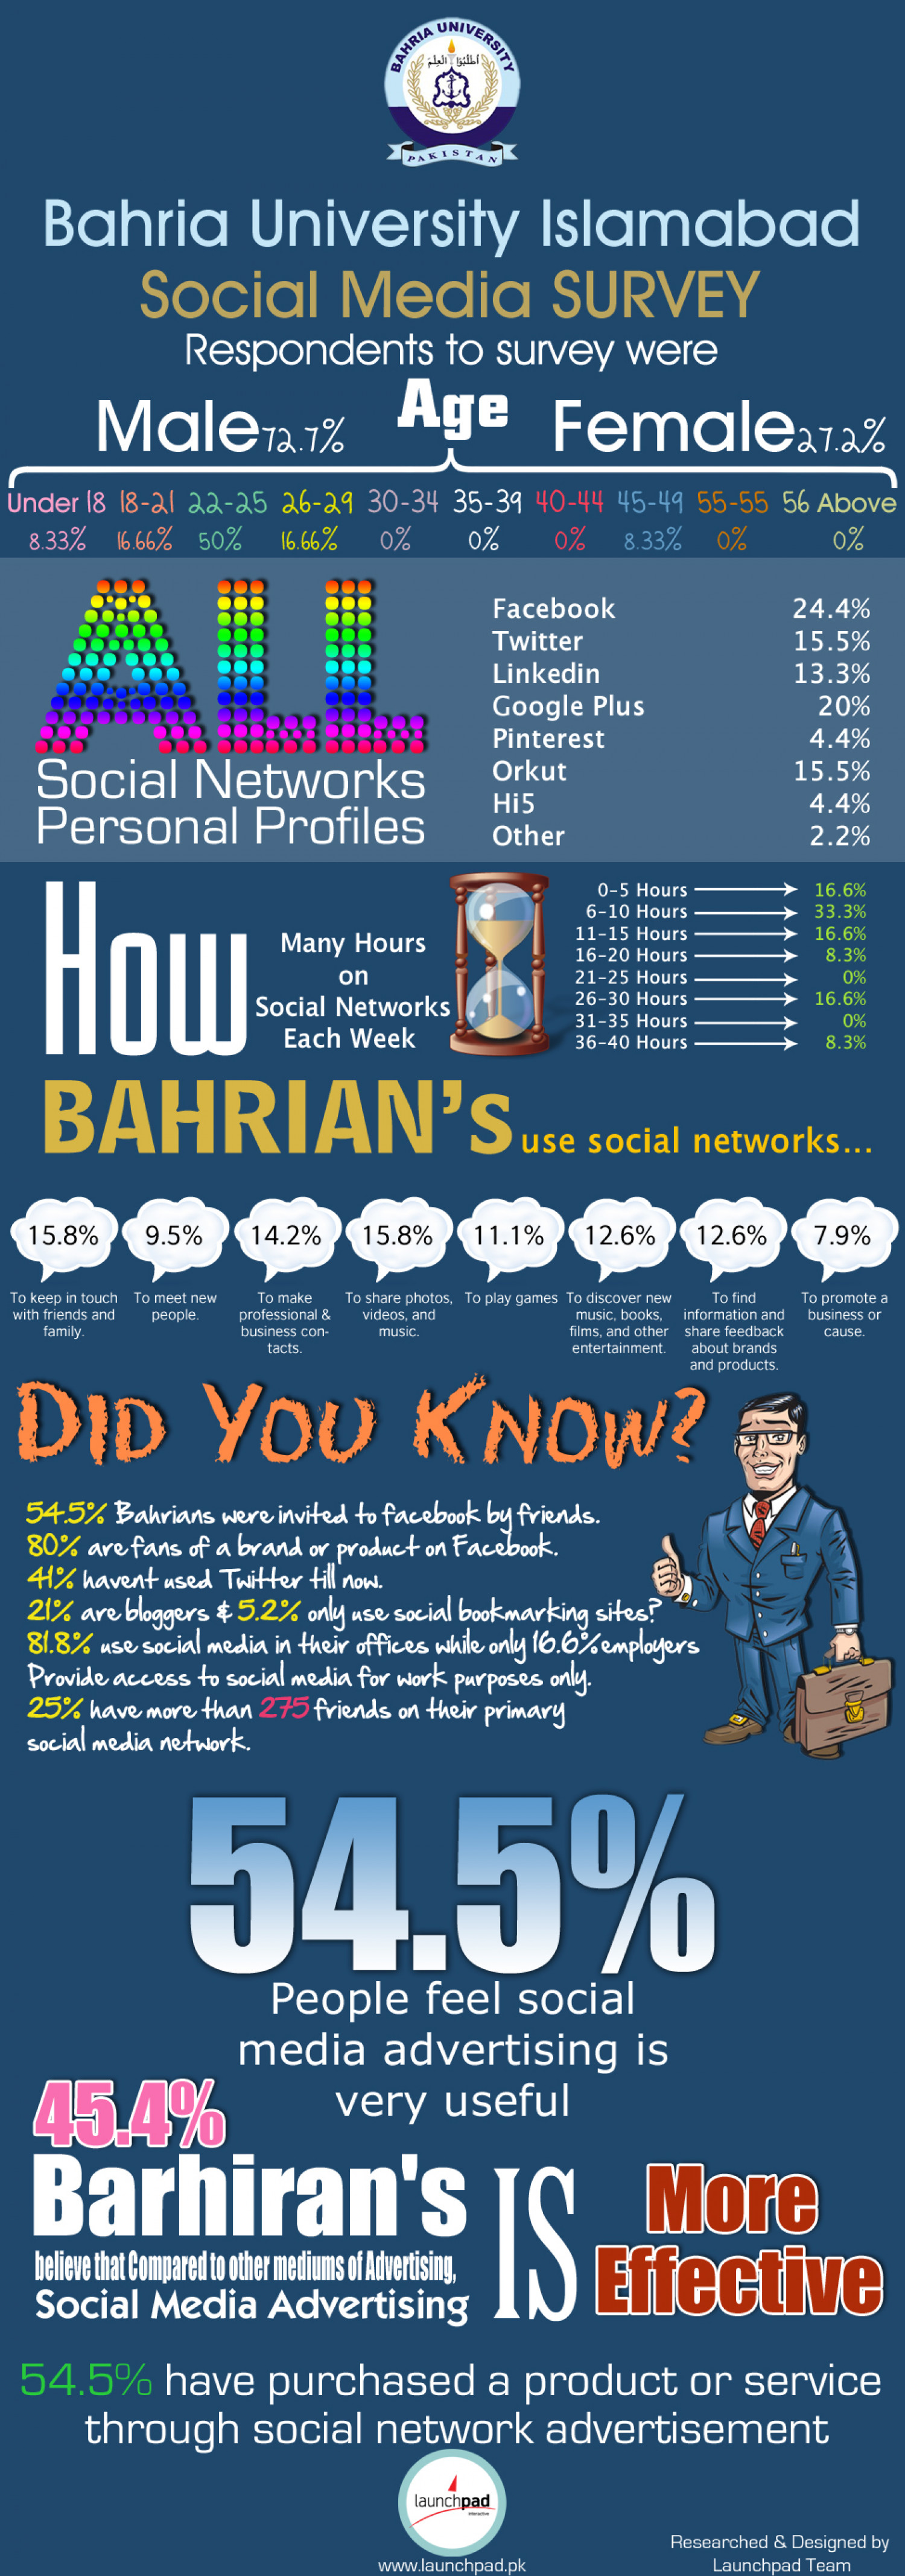 Bahria Career Expo 2012 Survey InfoGraphic Infographic